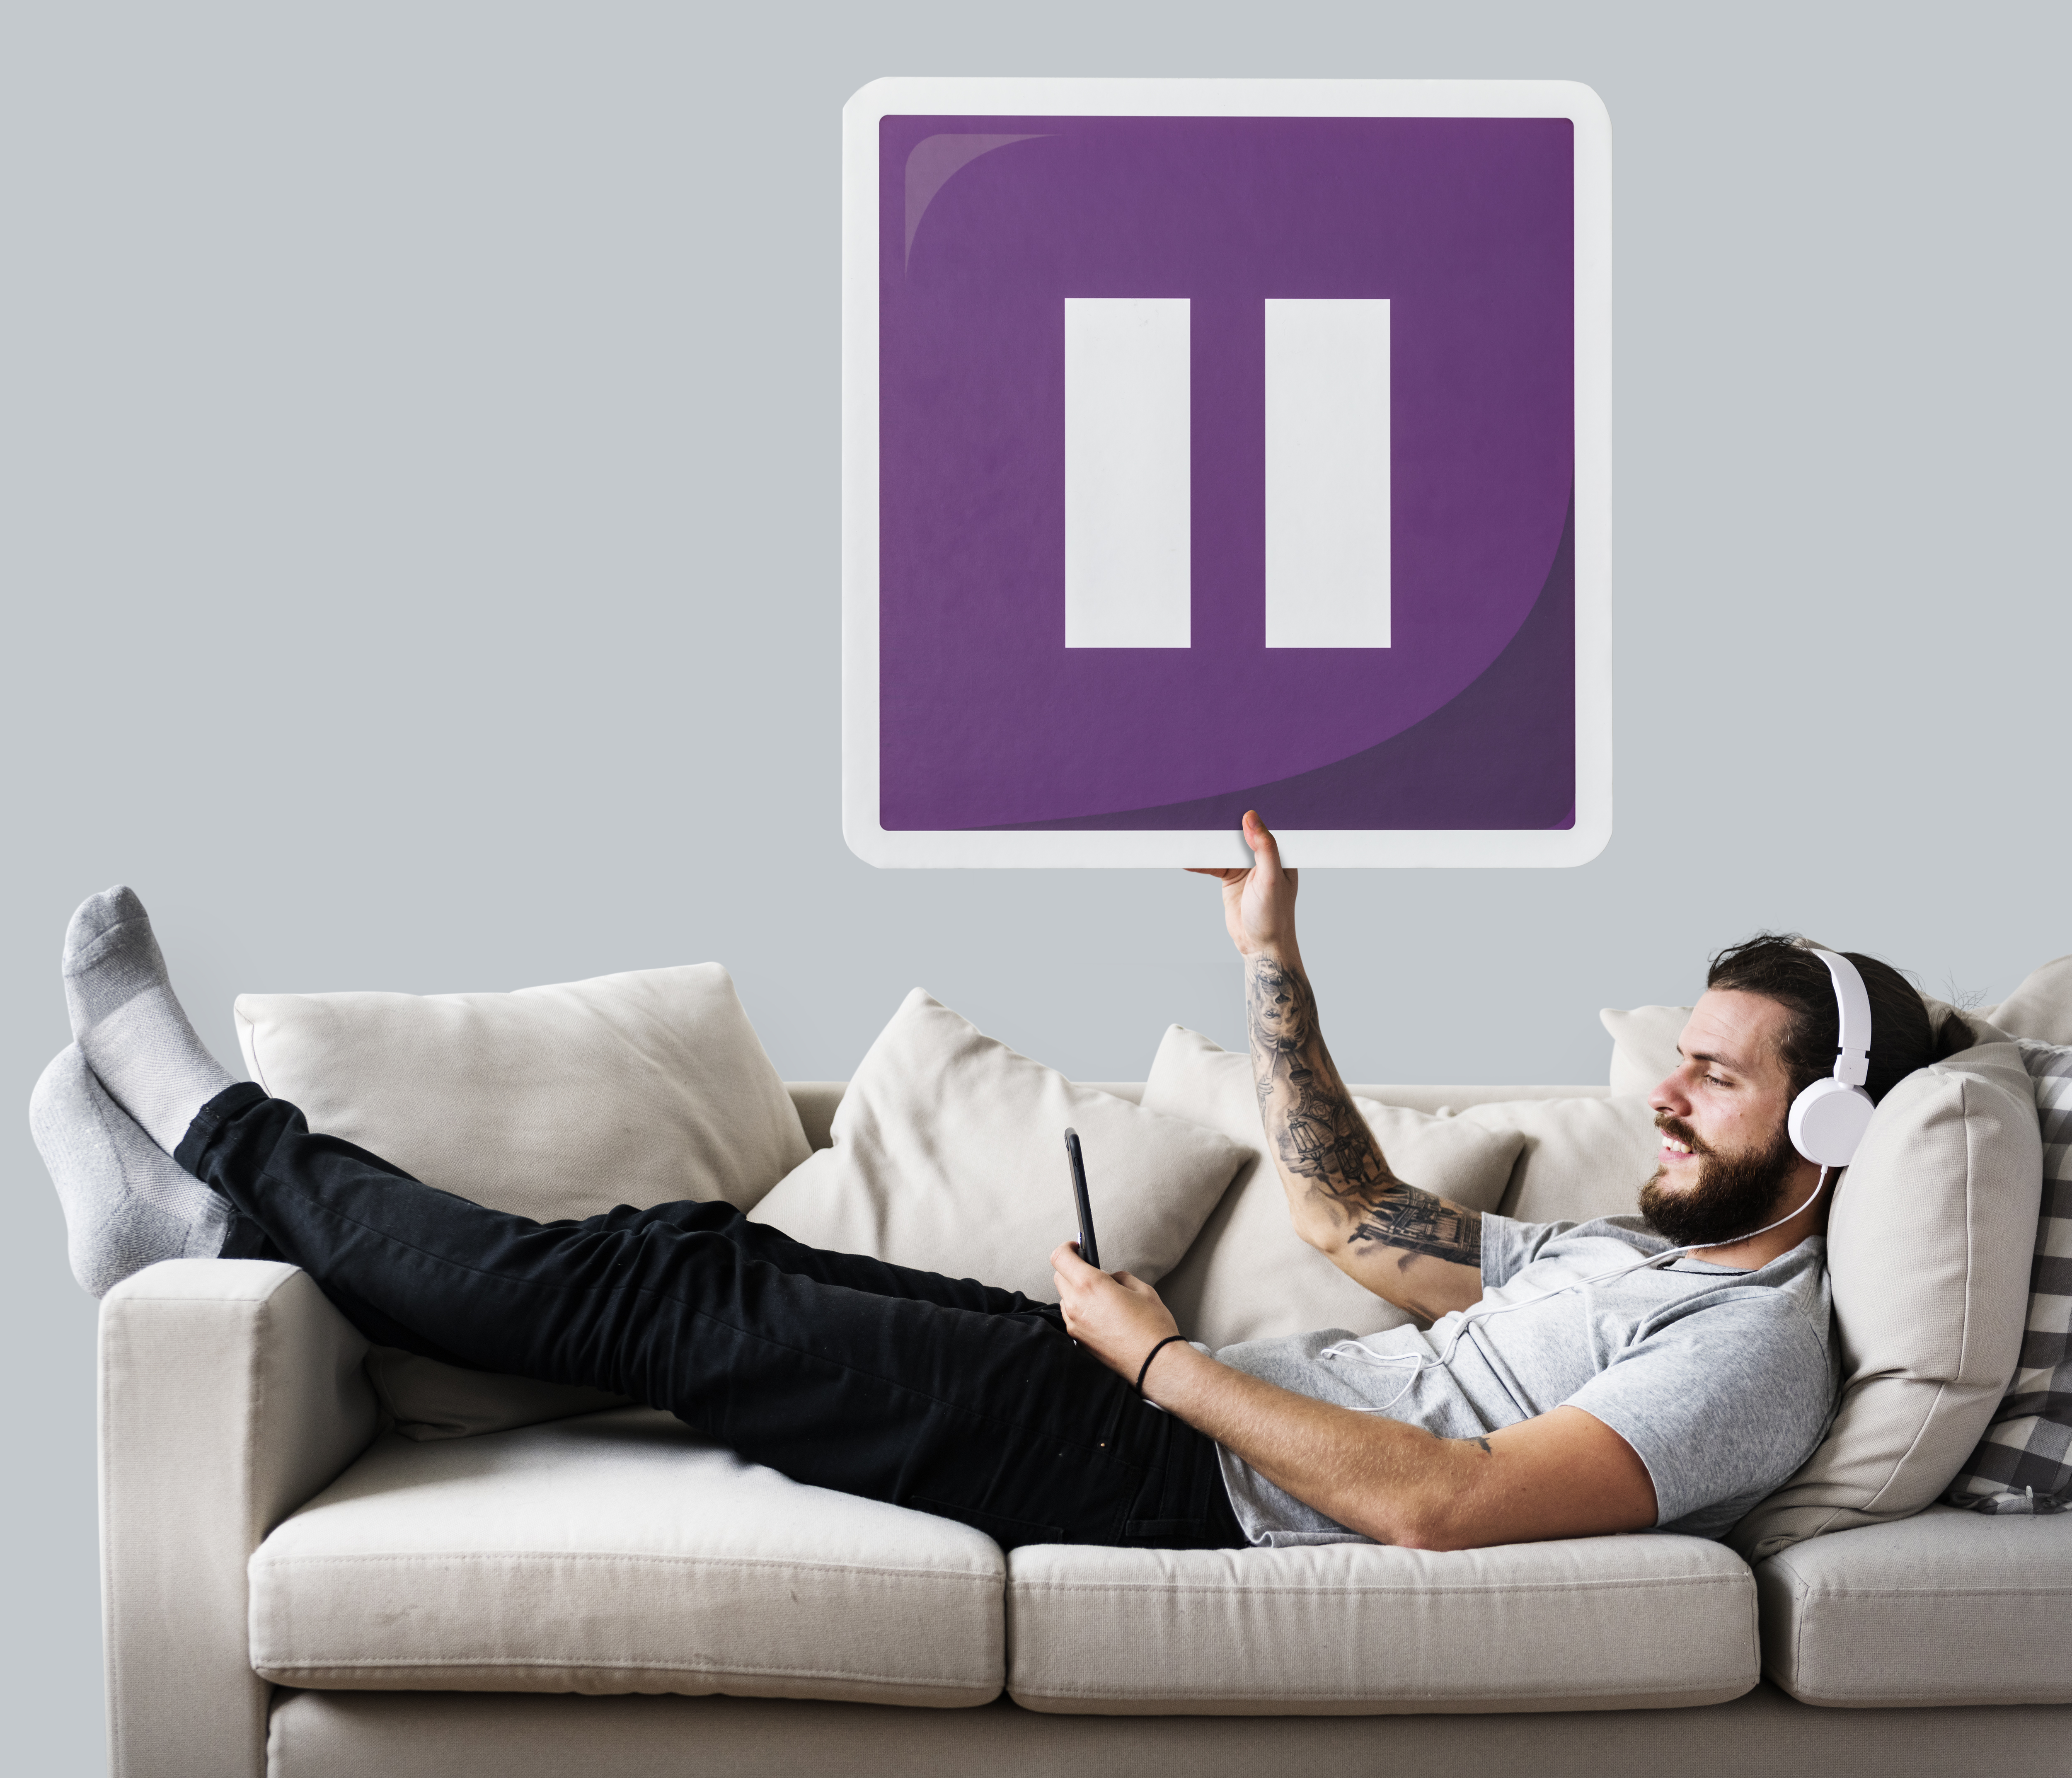 Male On A Couch Holding A Pause Button Icon